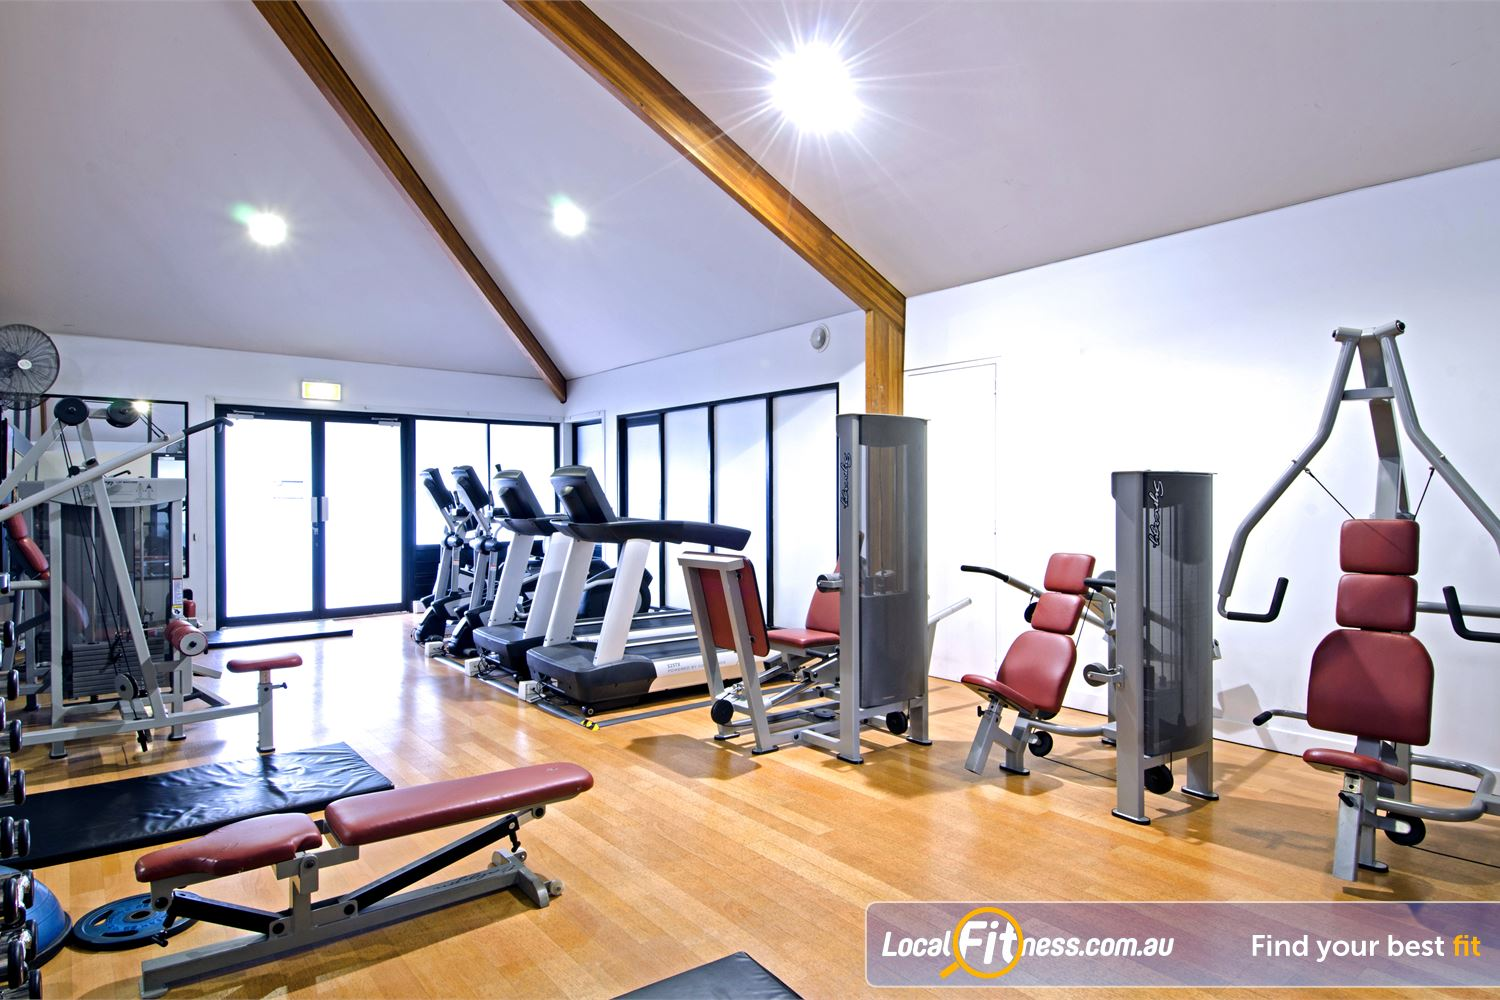 Goodlife Health Clubs Near Zillmere Wide selection of pin-loaded equipment.